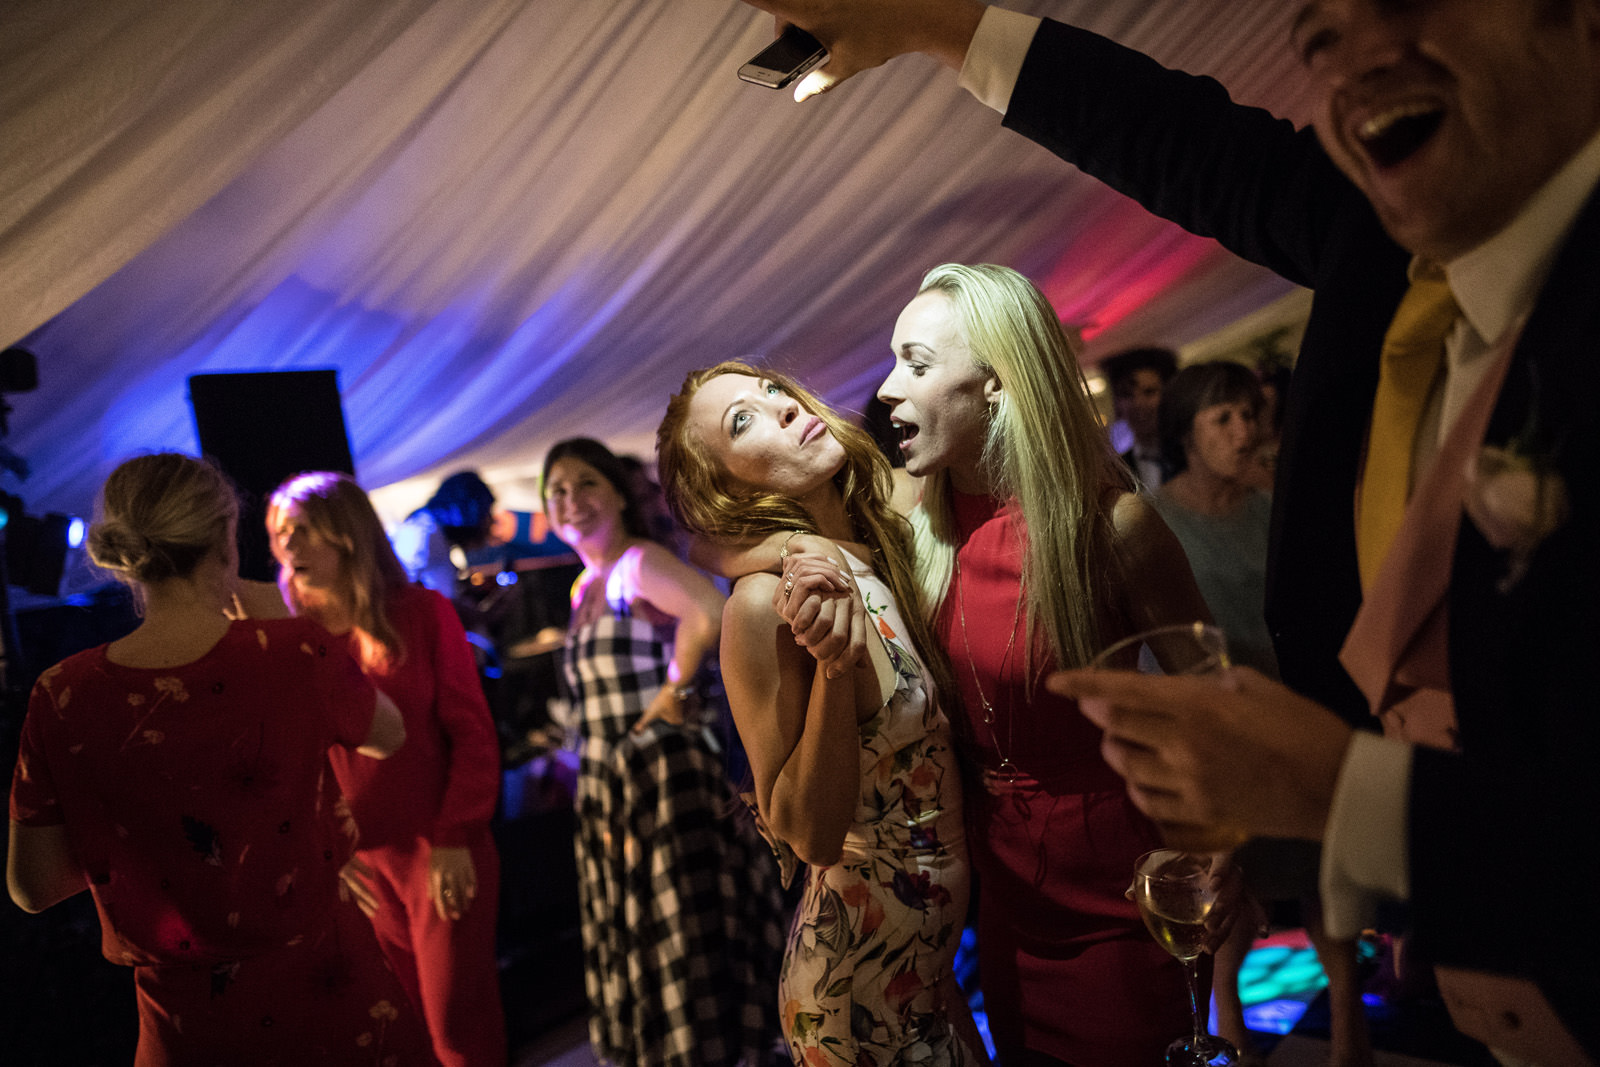 Wedding guests dancing in a marquee